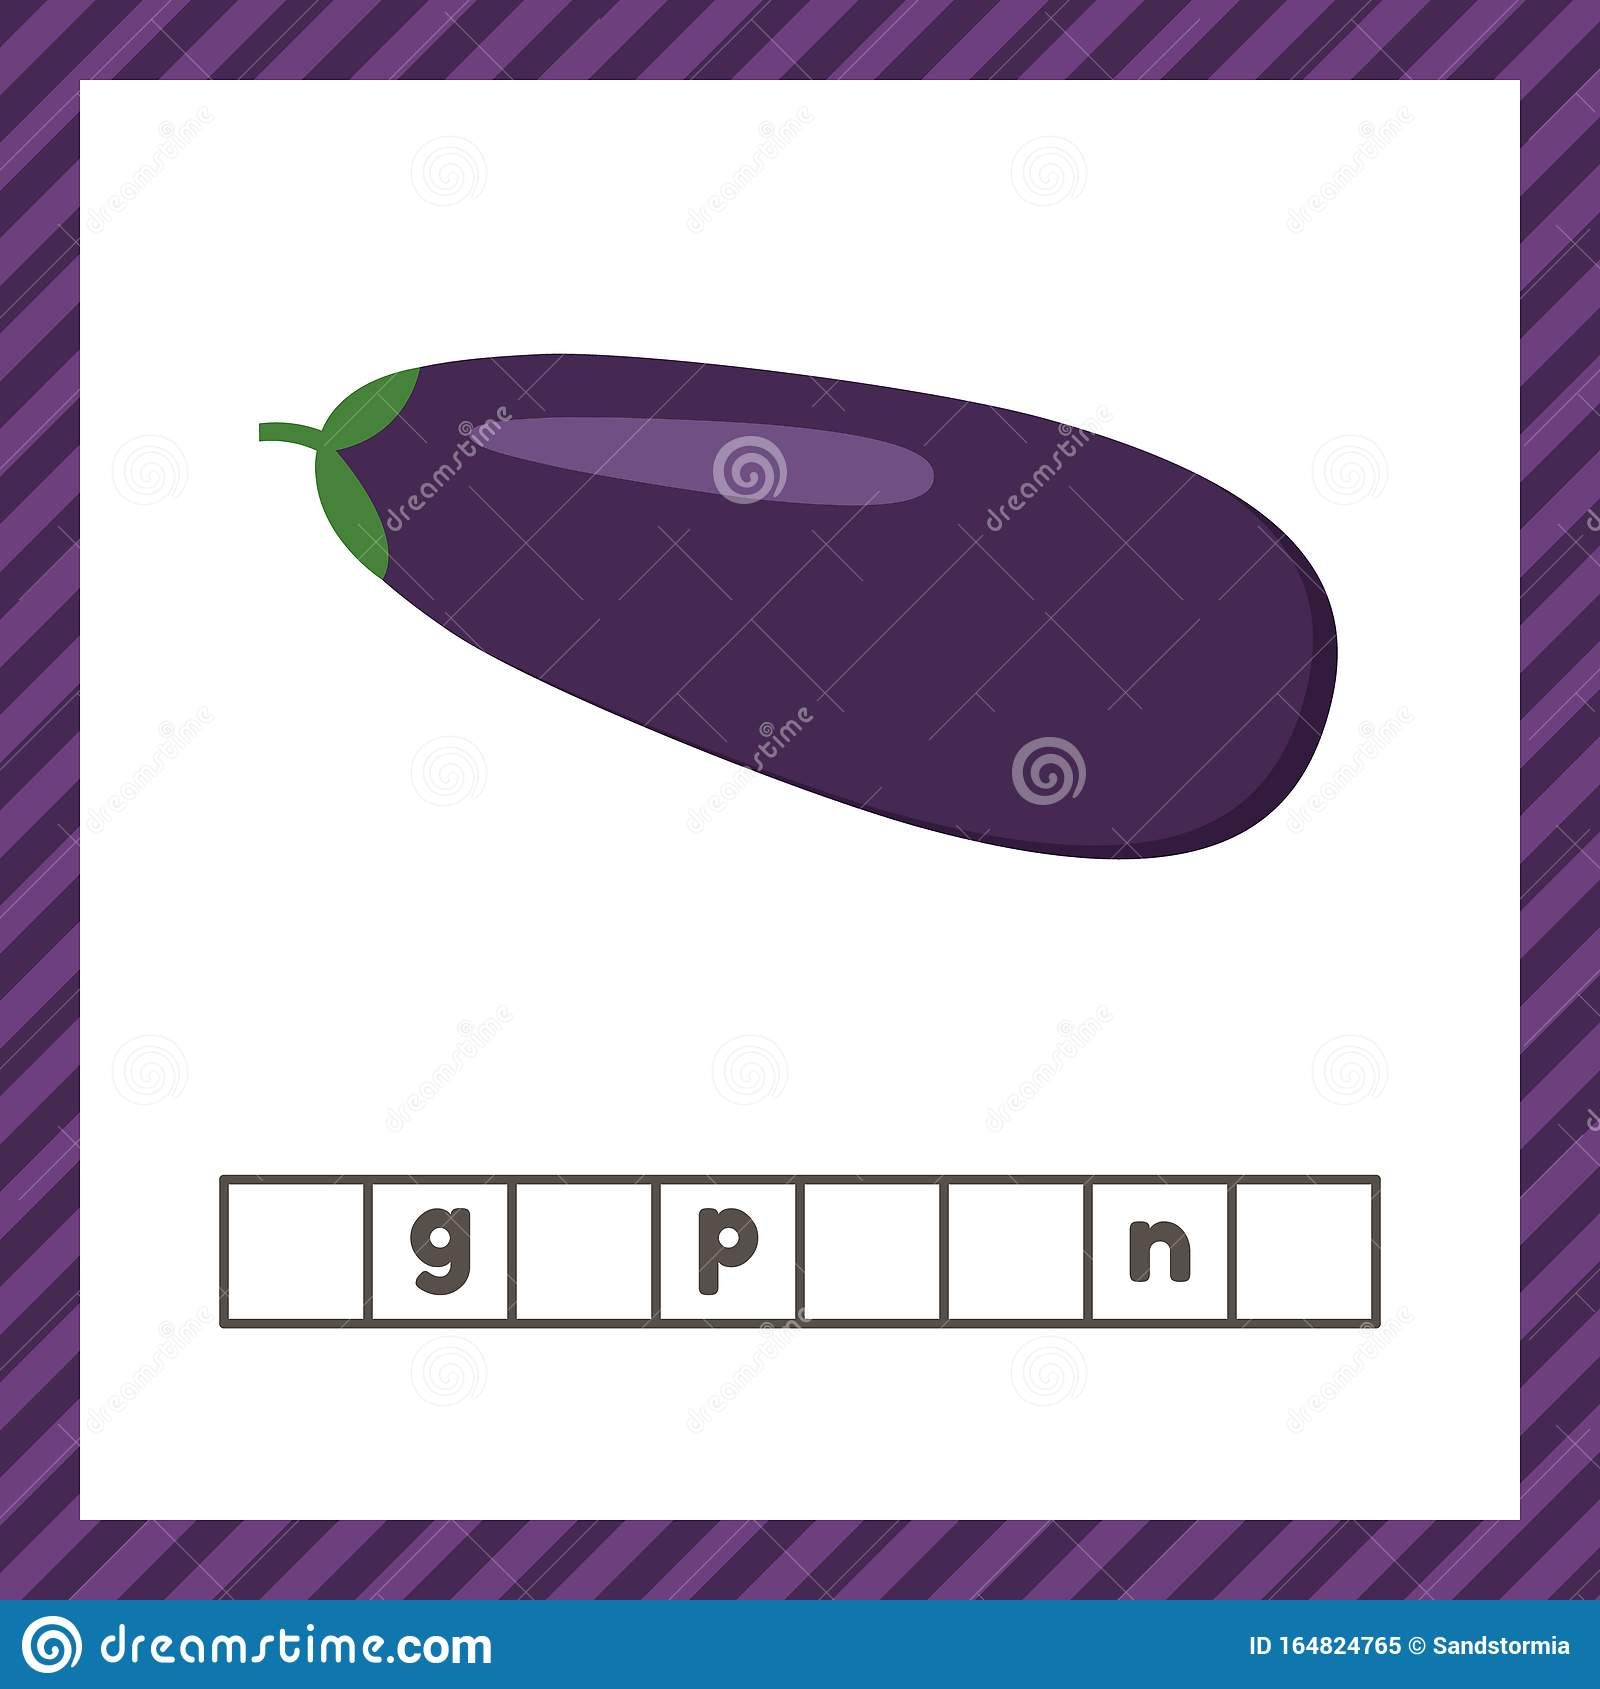 Vegetable Eggplant Educational Logic Worksheet For